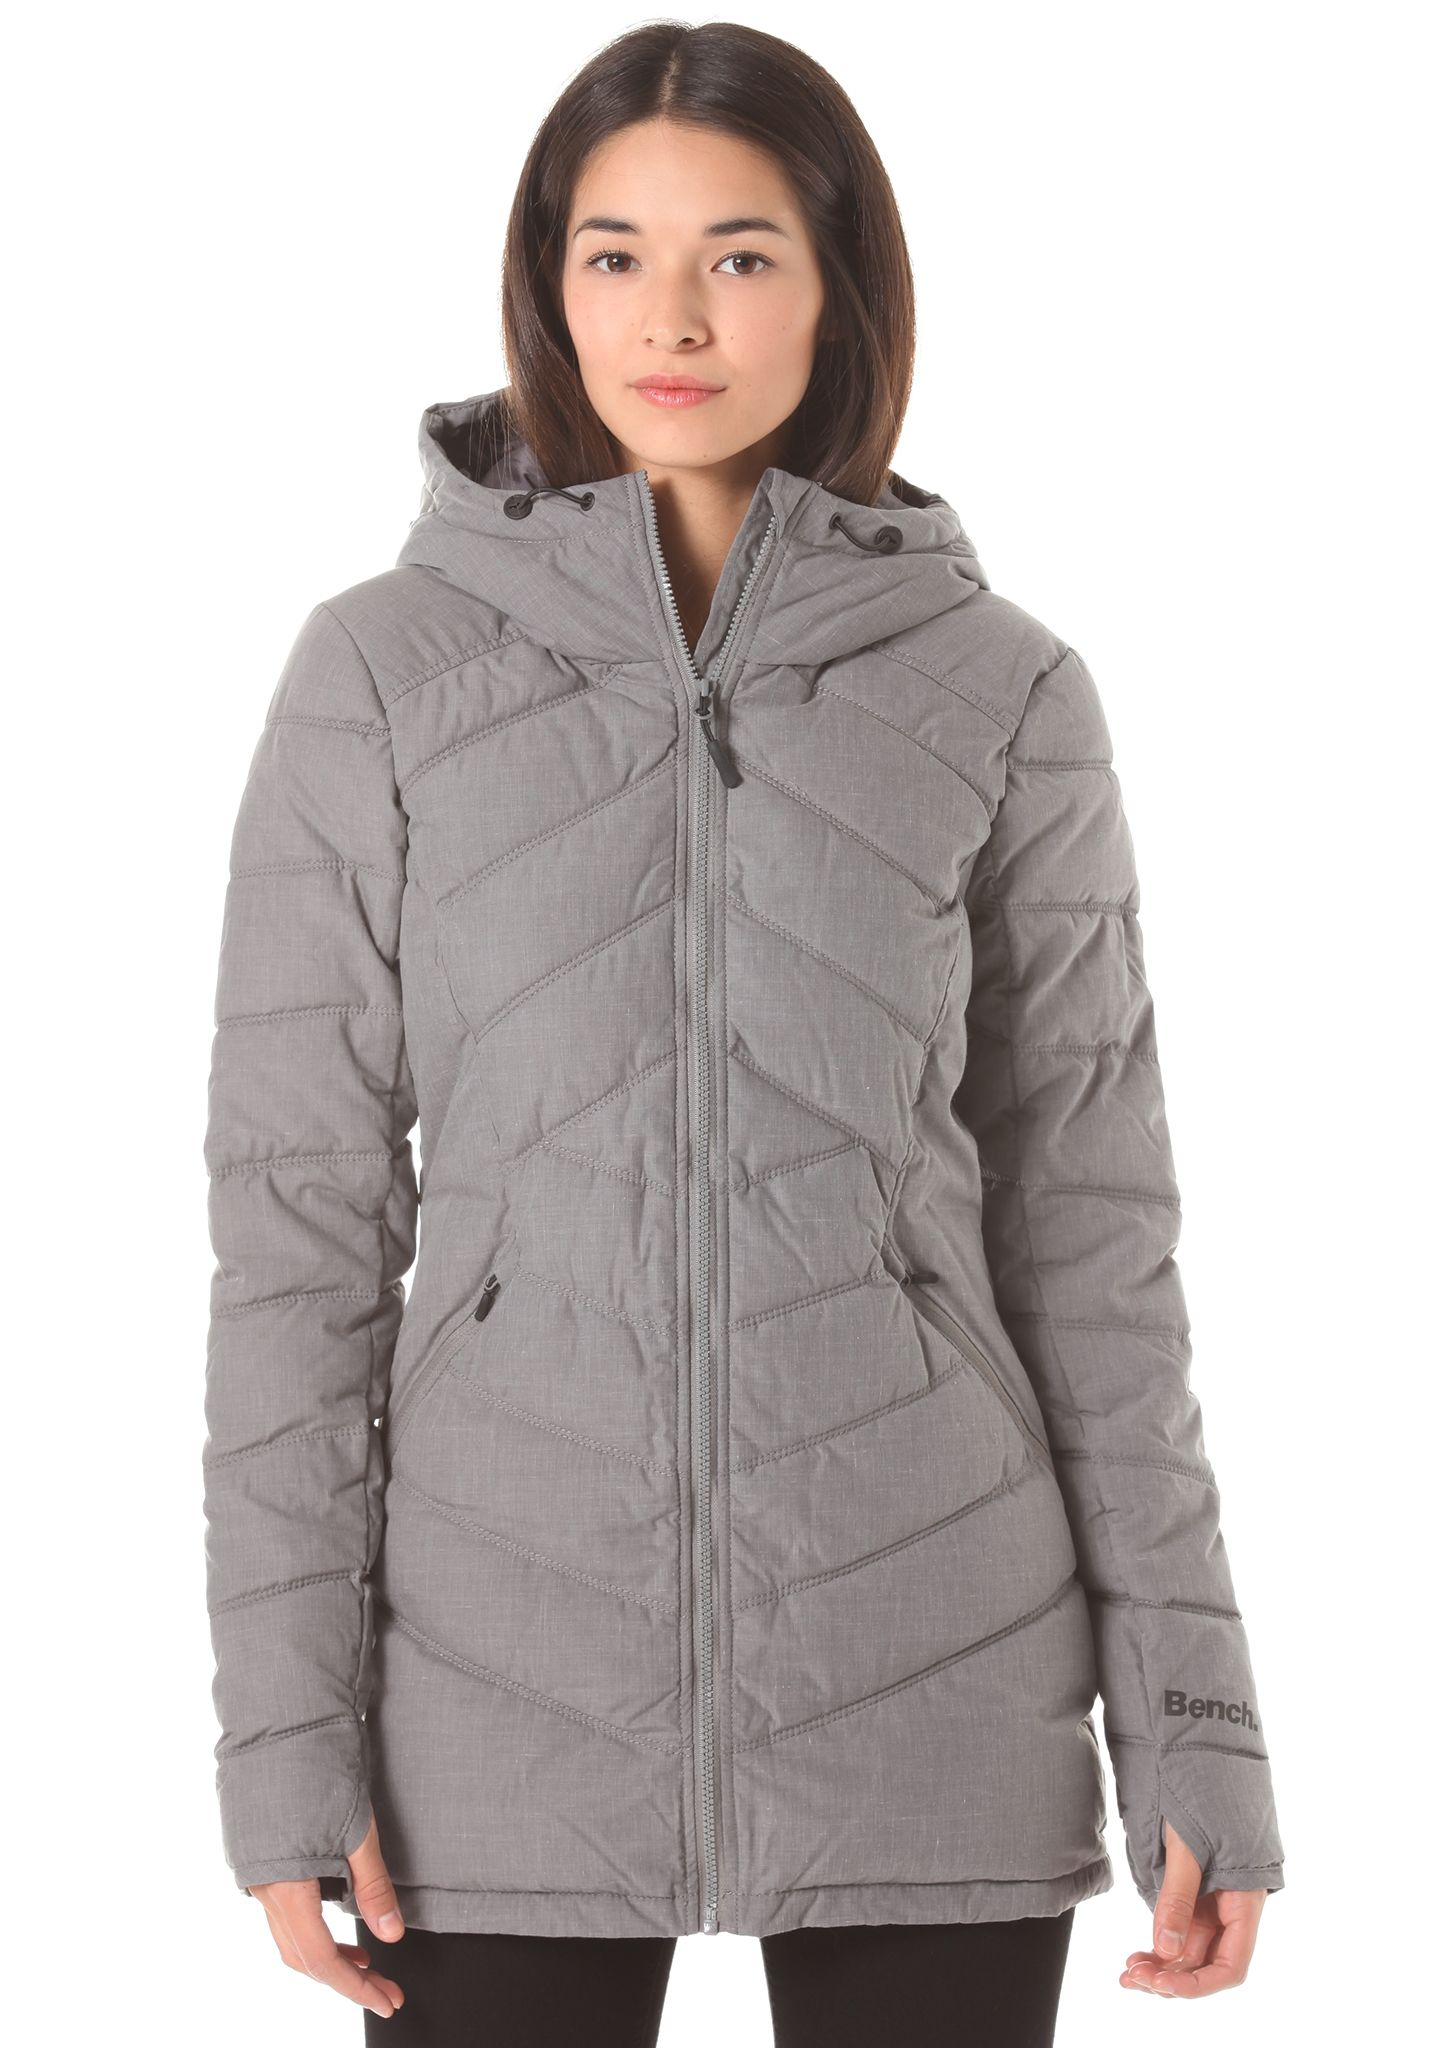 Bench jacke damen ebay